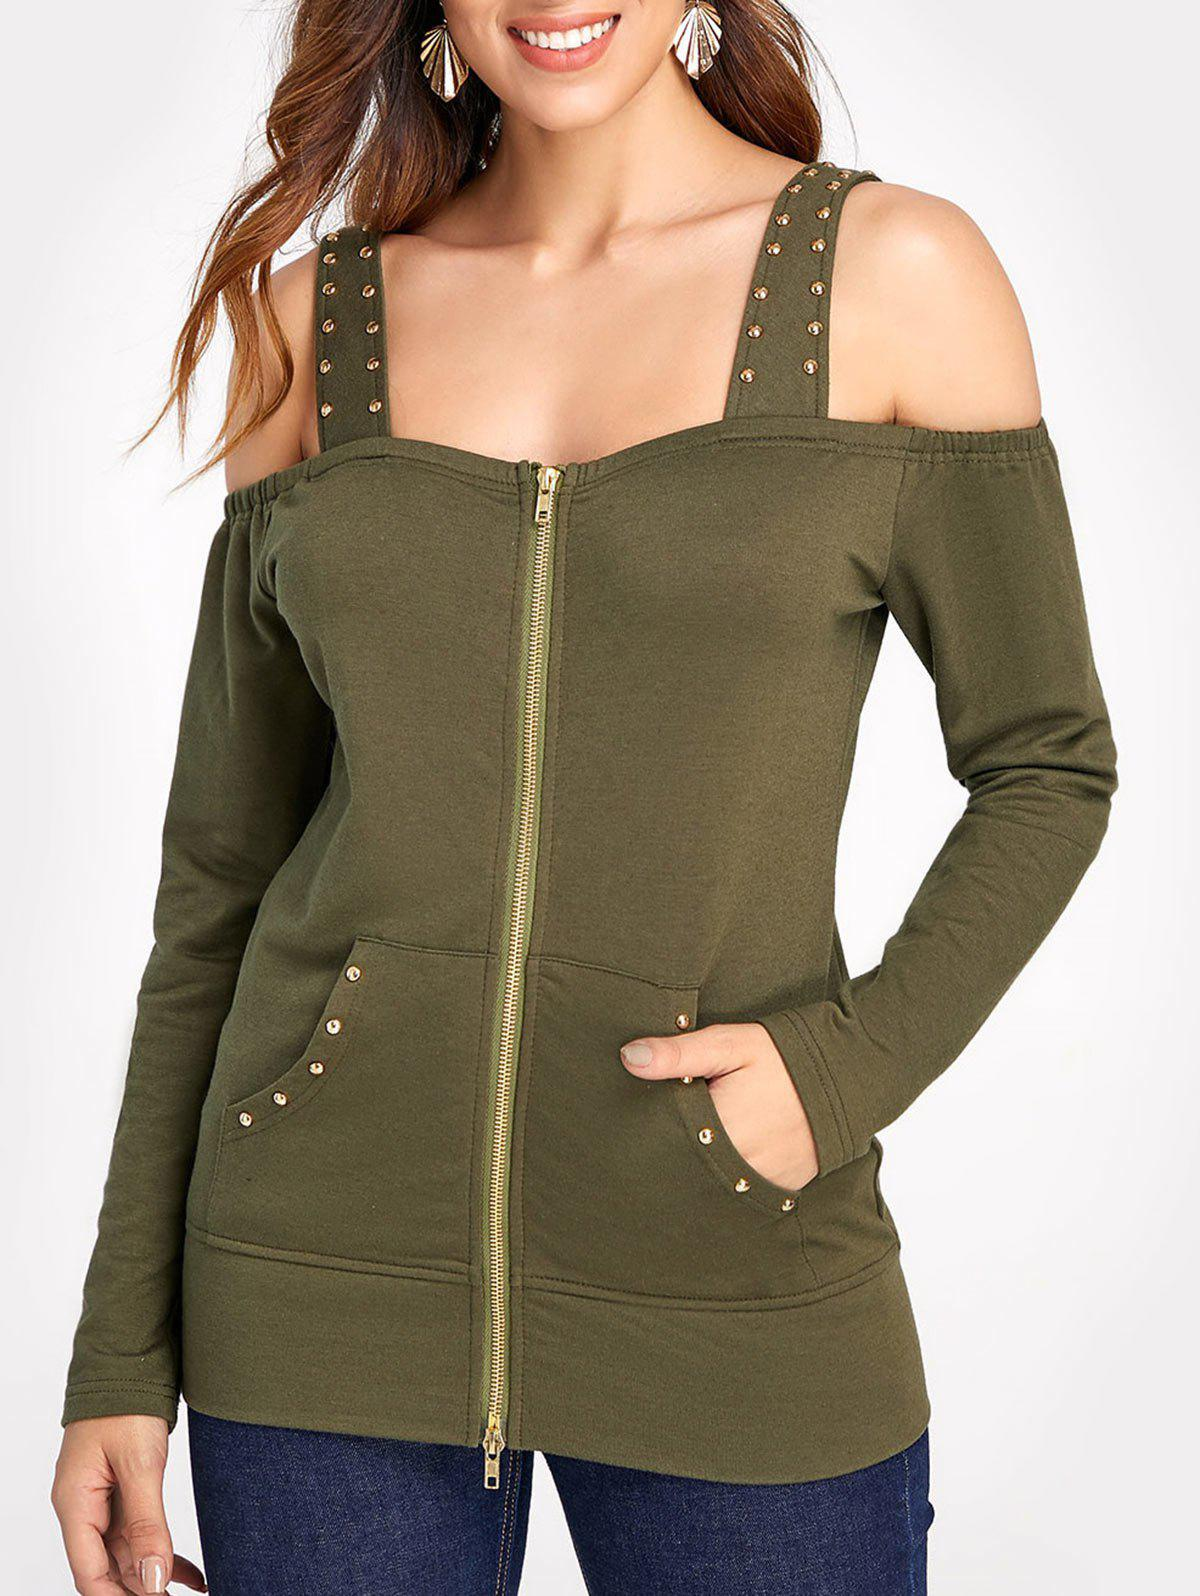 Zipper Fly Sweatshirt with Cold Shoulder - ARMY GREEN L